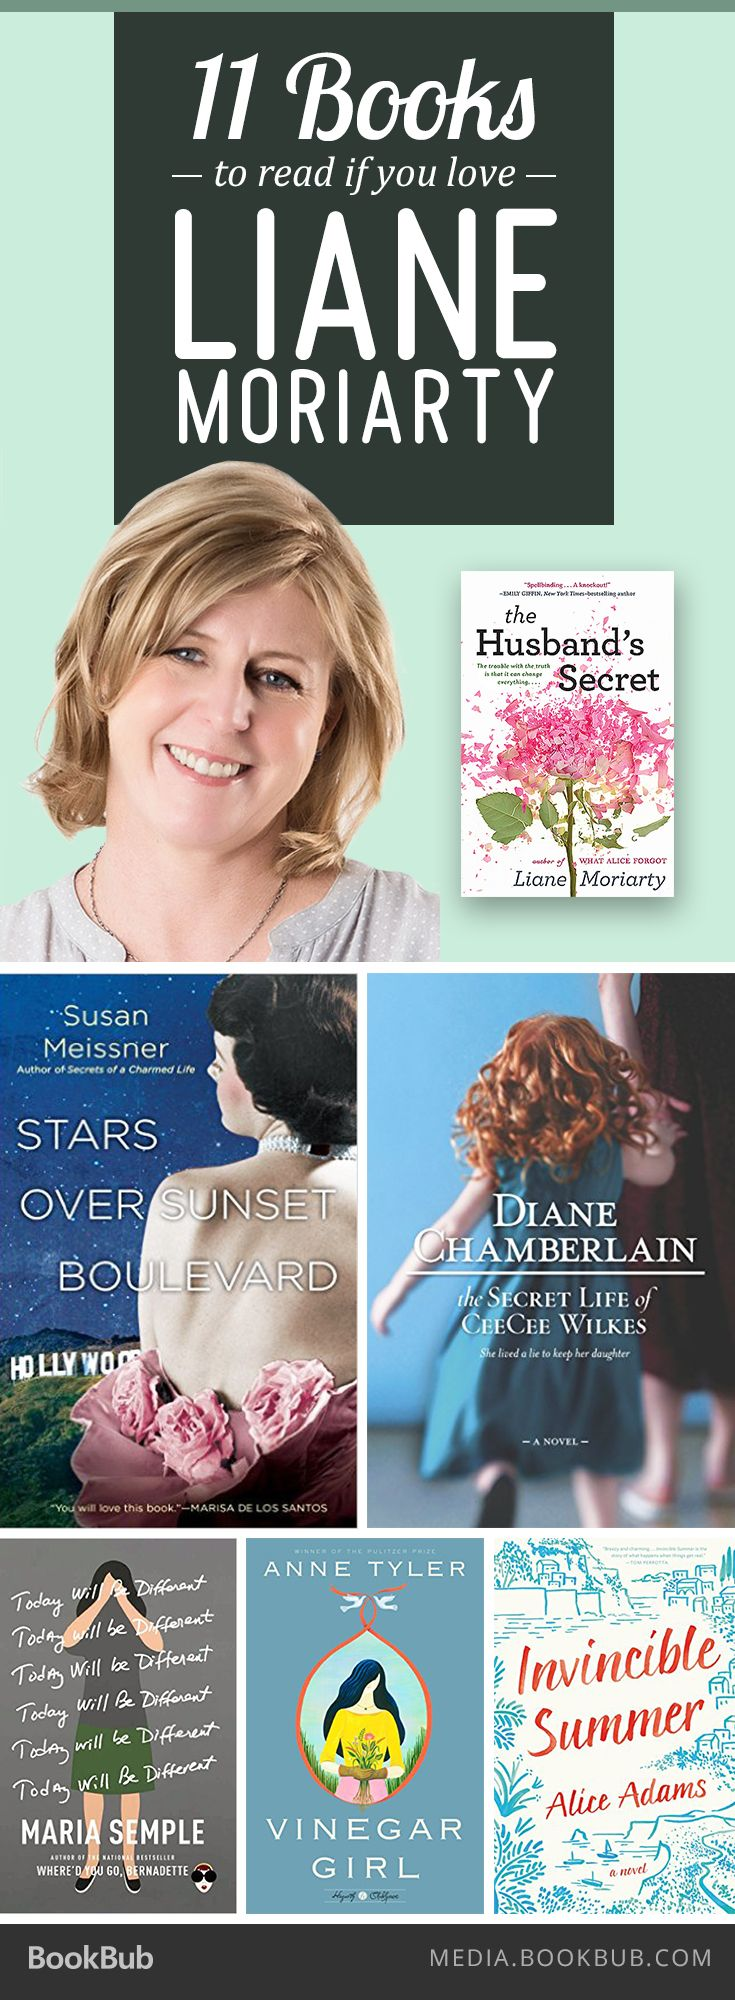 11 Books To Read If You Love Liane Moriarty